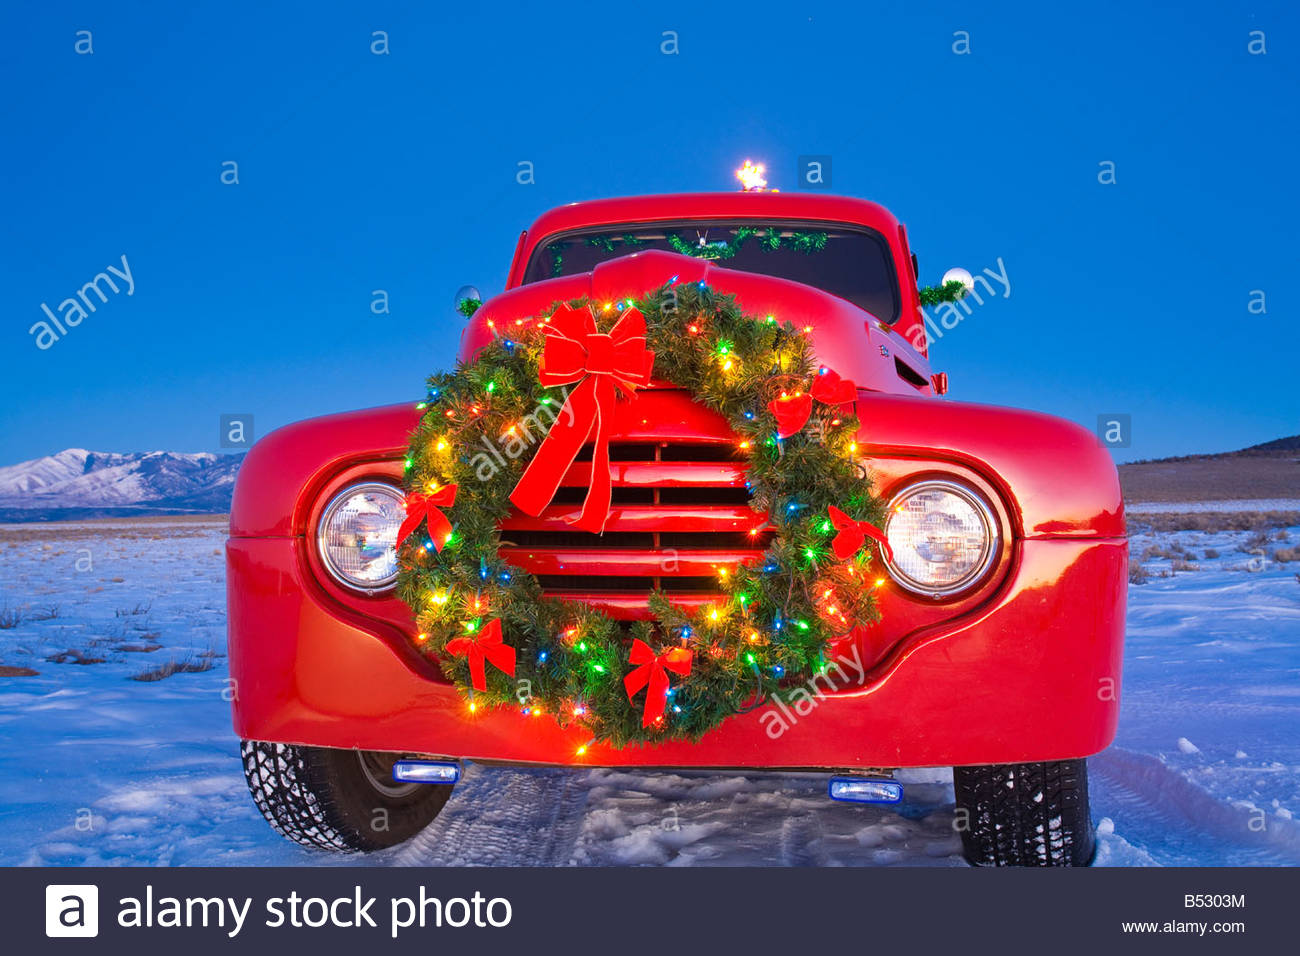 Free Christmas Tree Pick Up Part - 33: Stock Photo - Vintage Ford Pick-up Truck With Christmas Wreath And Tree In  Back Parked In Rural Area At Sunset, Rio Grande Valley, New Mexico